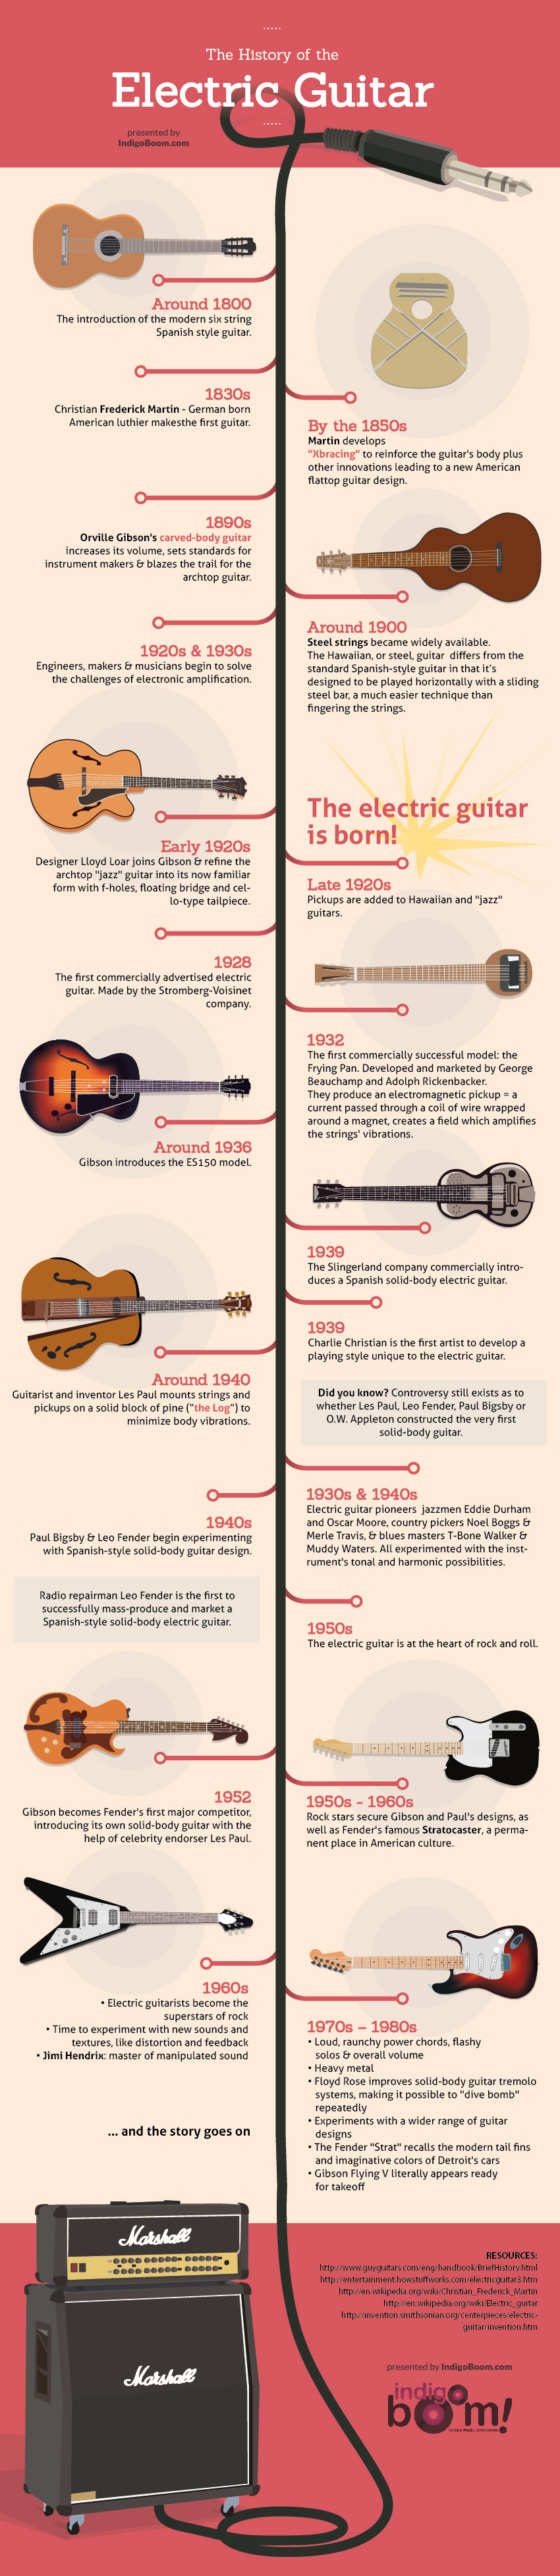 the-history-of-the-electric-guitar_523ac005b75b8